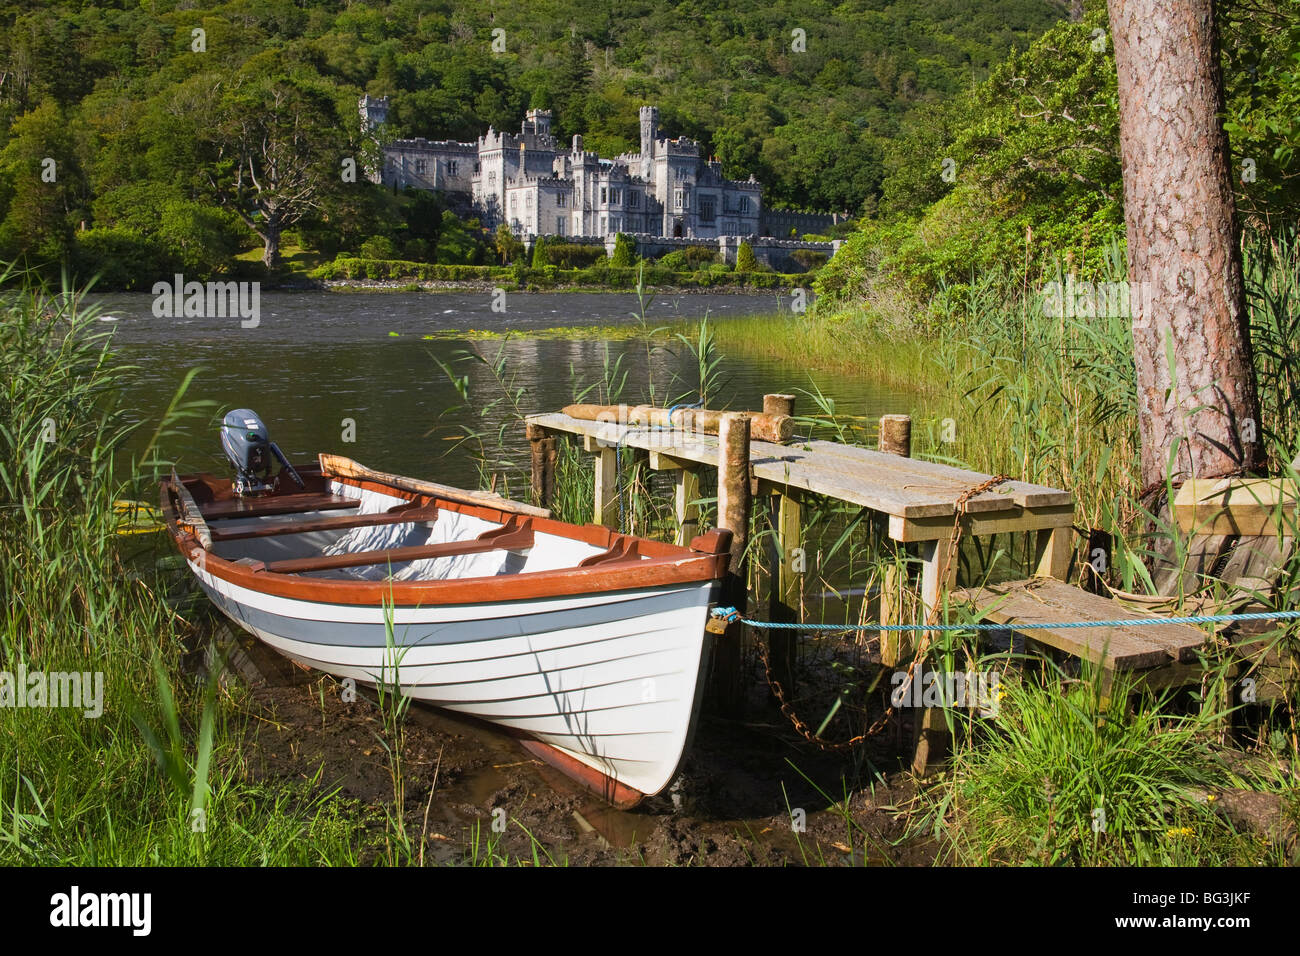 Kylemore Abbey and Lake, Connemara, County Galway, Connacht, Republic of Ireland, Europe - Stock Image